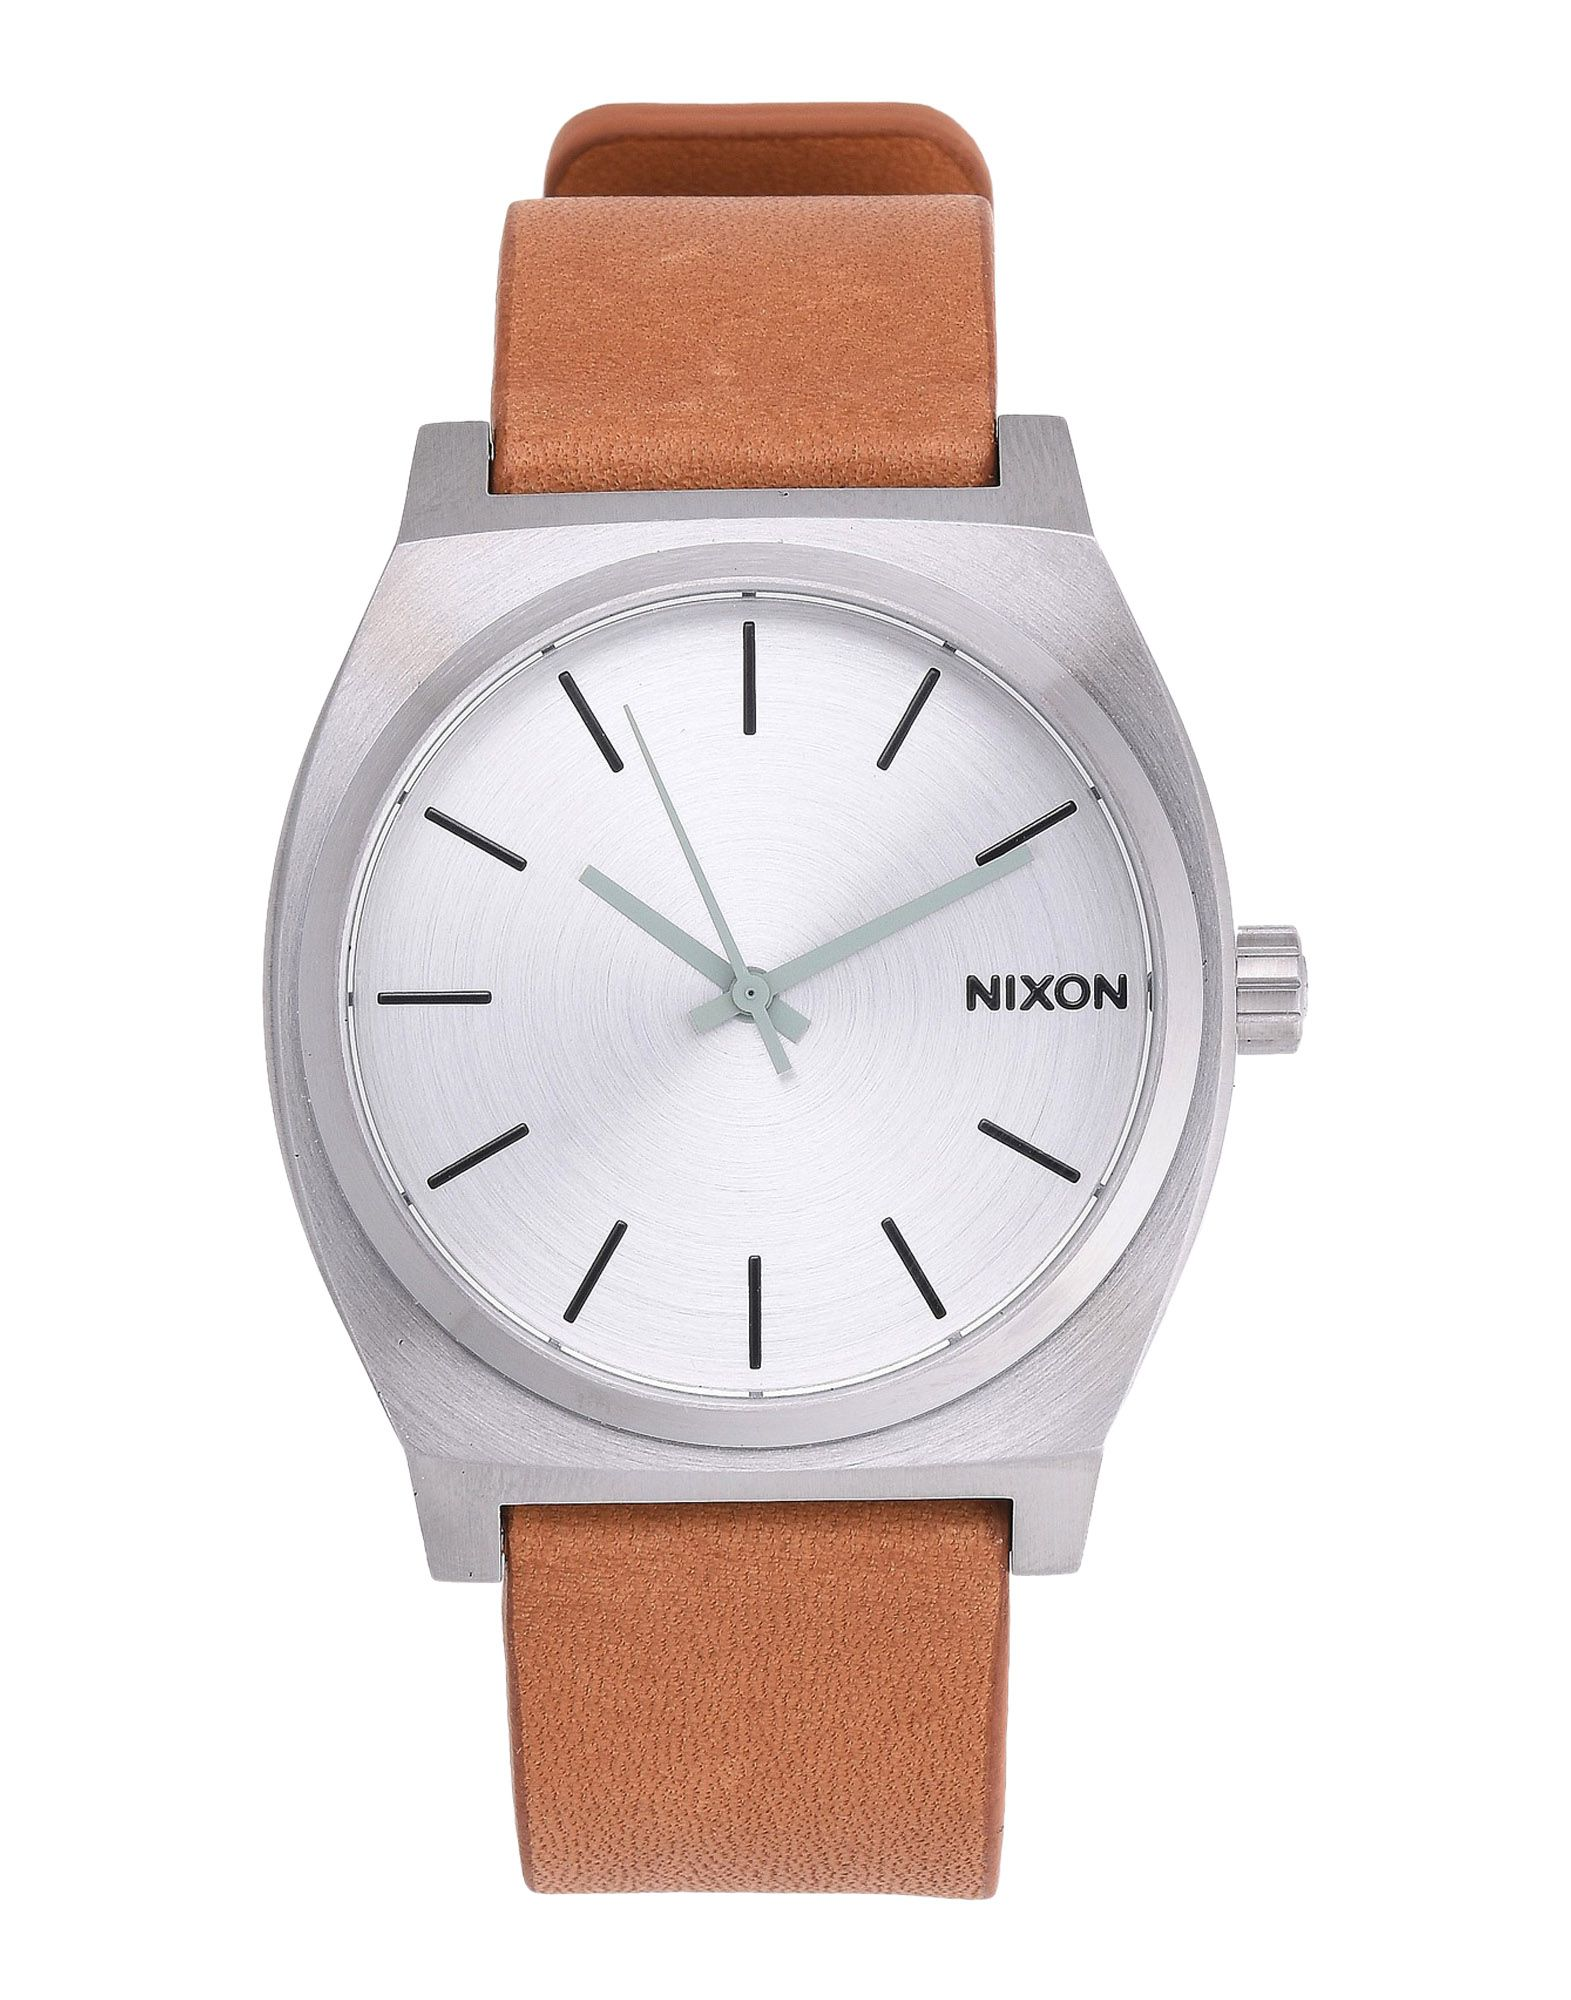 NIXON Наручные часы часы nixon genesis leather white saddle